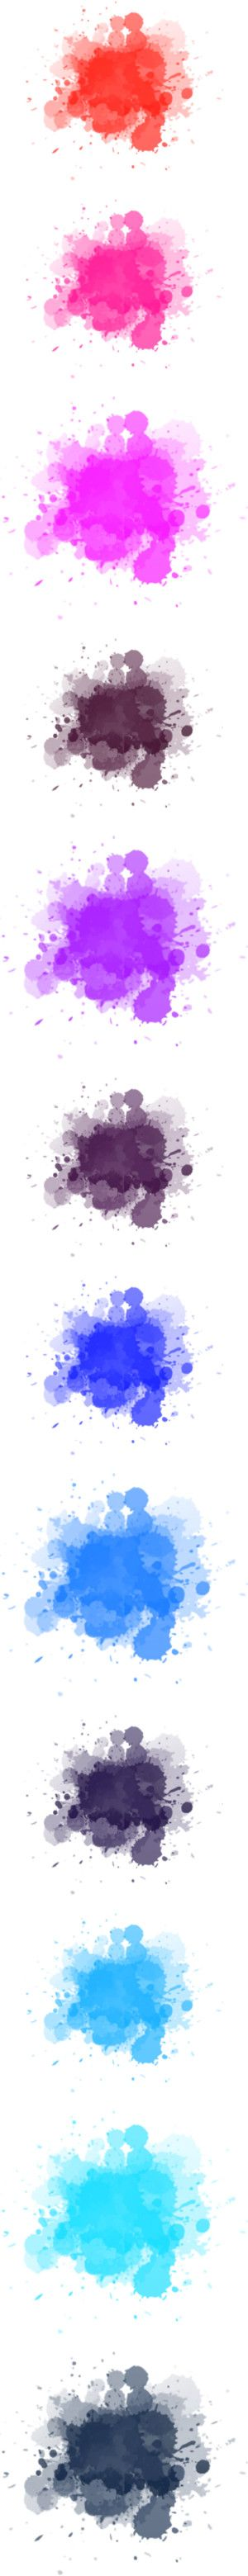 """""""Watercolor Splashes"""" by neamisra ❤ liked on Polyvore"""